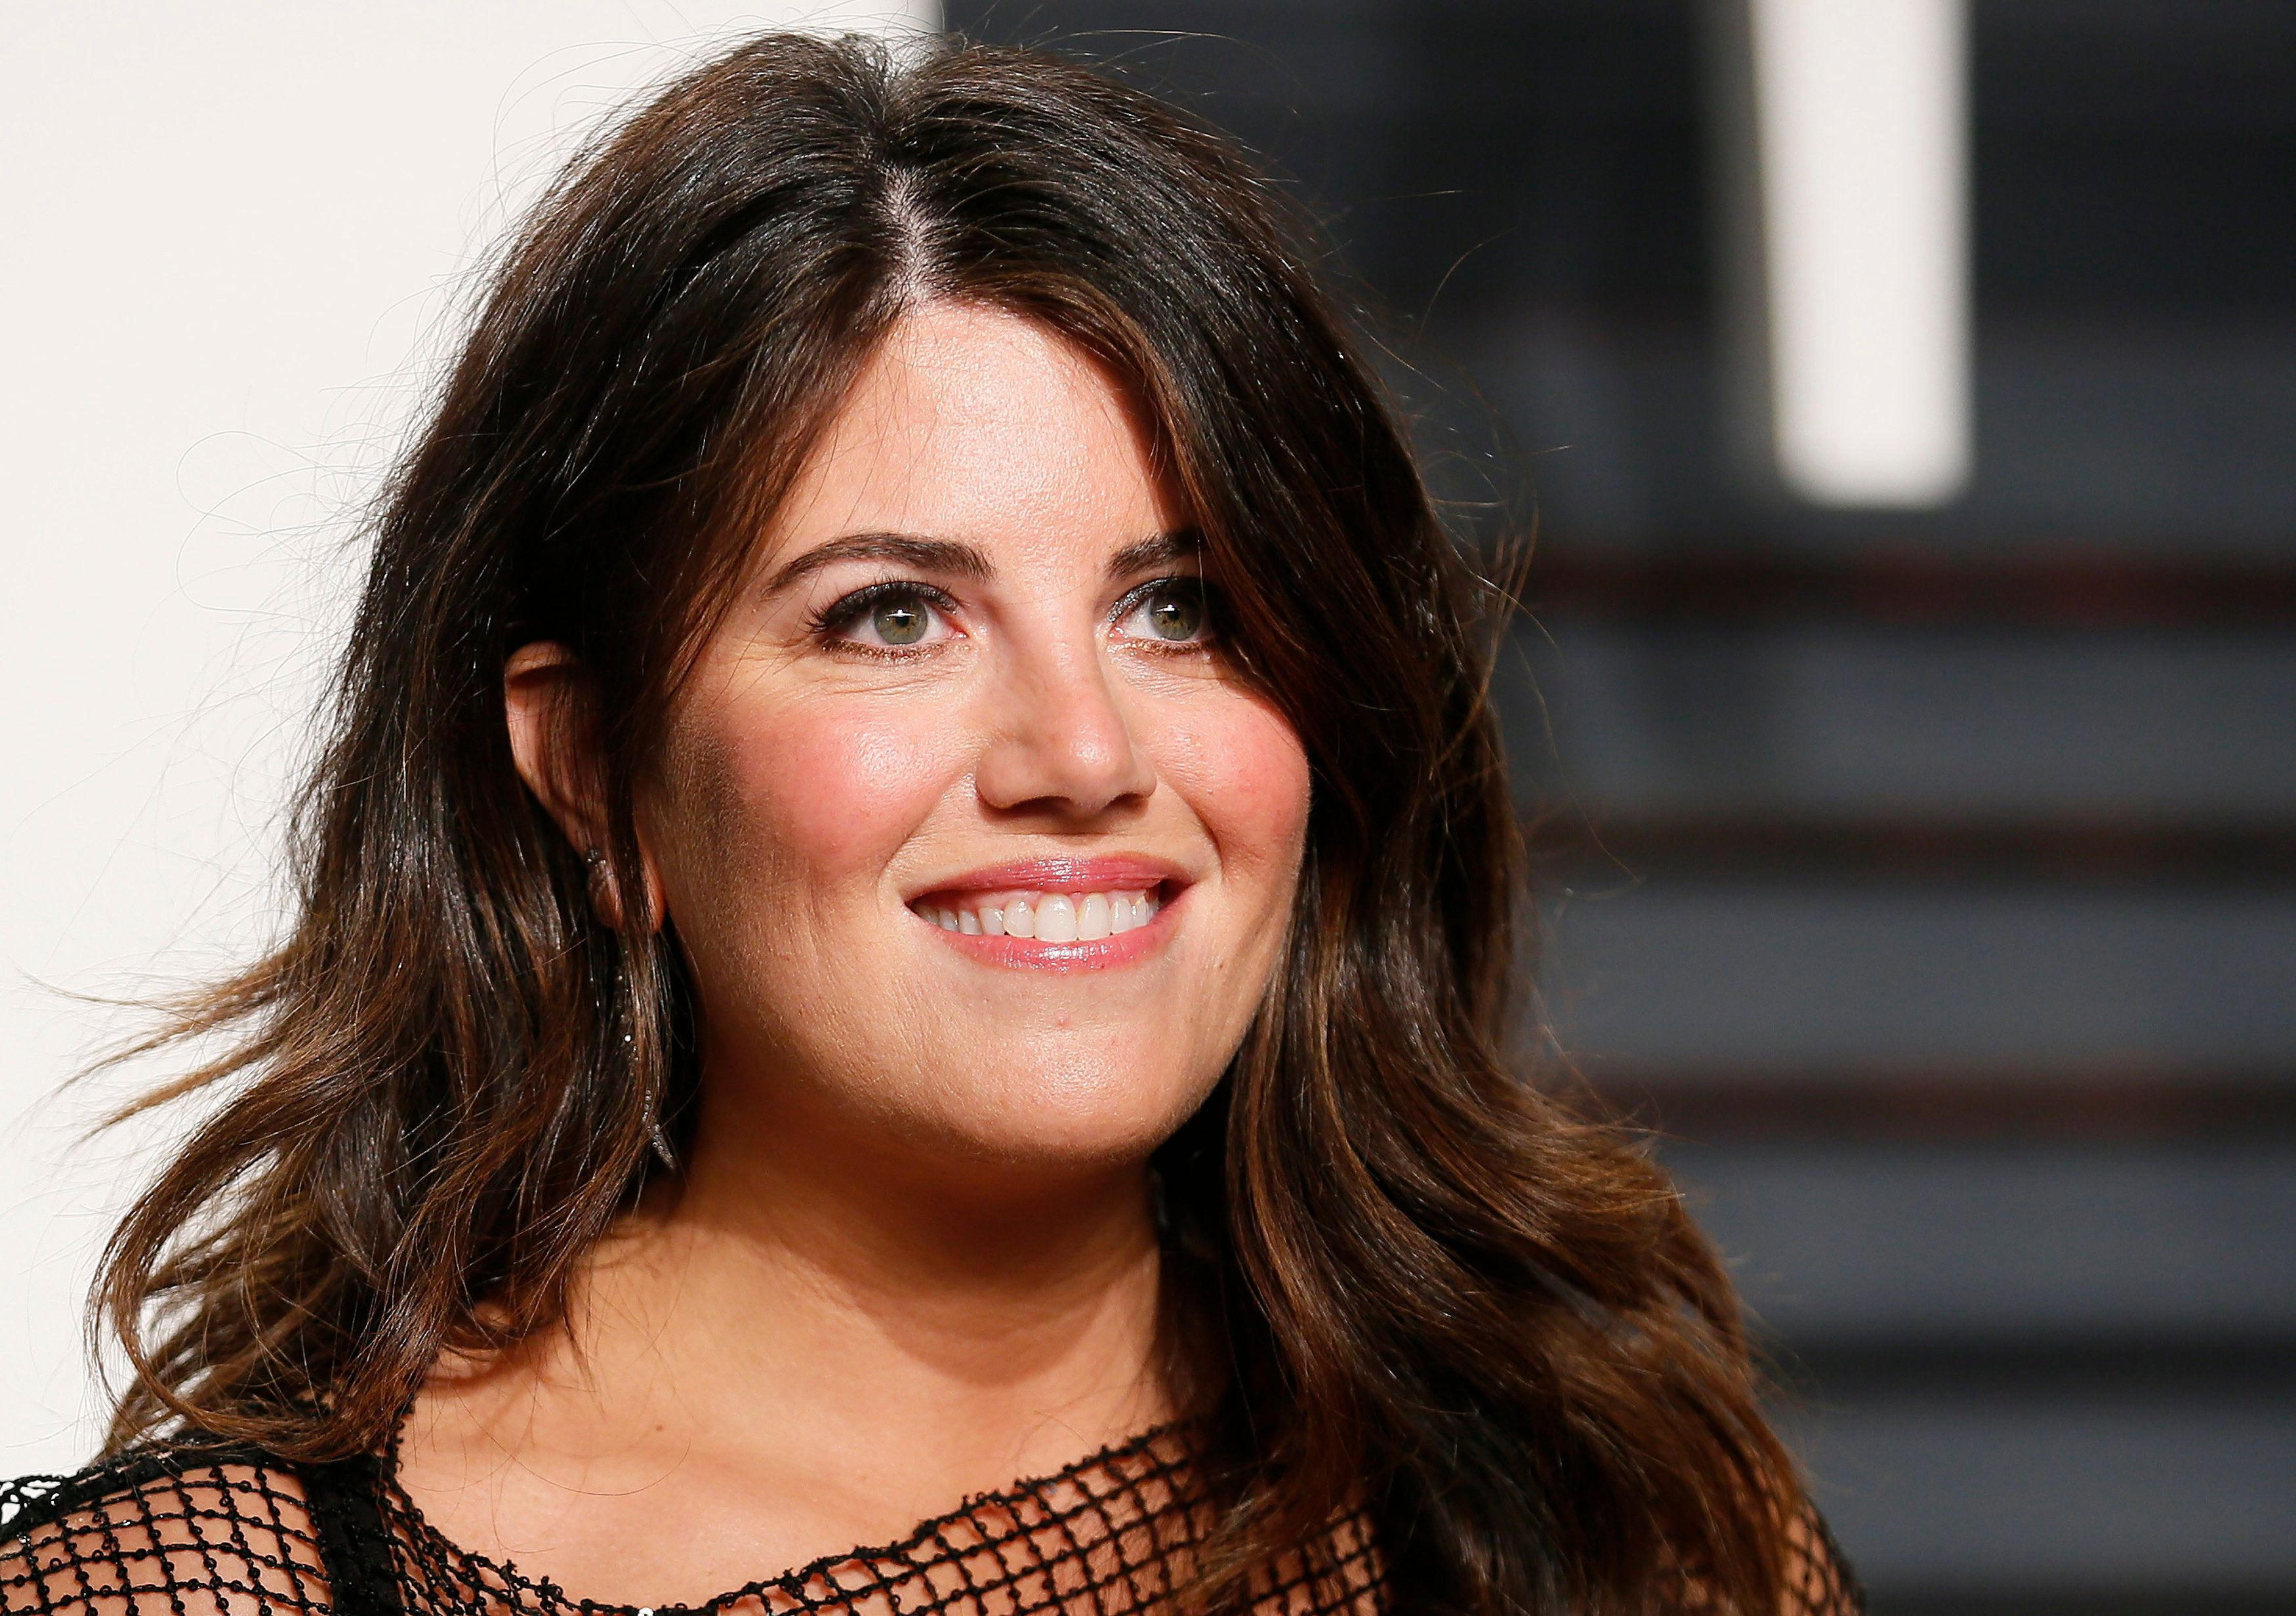 89th Academy Awards - Oscars Vanity Fair Party - Beverly Hills, California, U.S. - 26/02/17 – TV personality Monica Lewinsky. REUTERS/Danny Moloshok